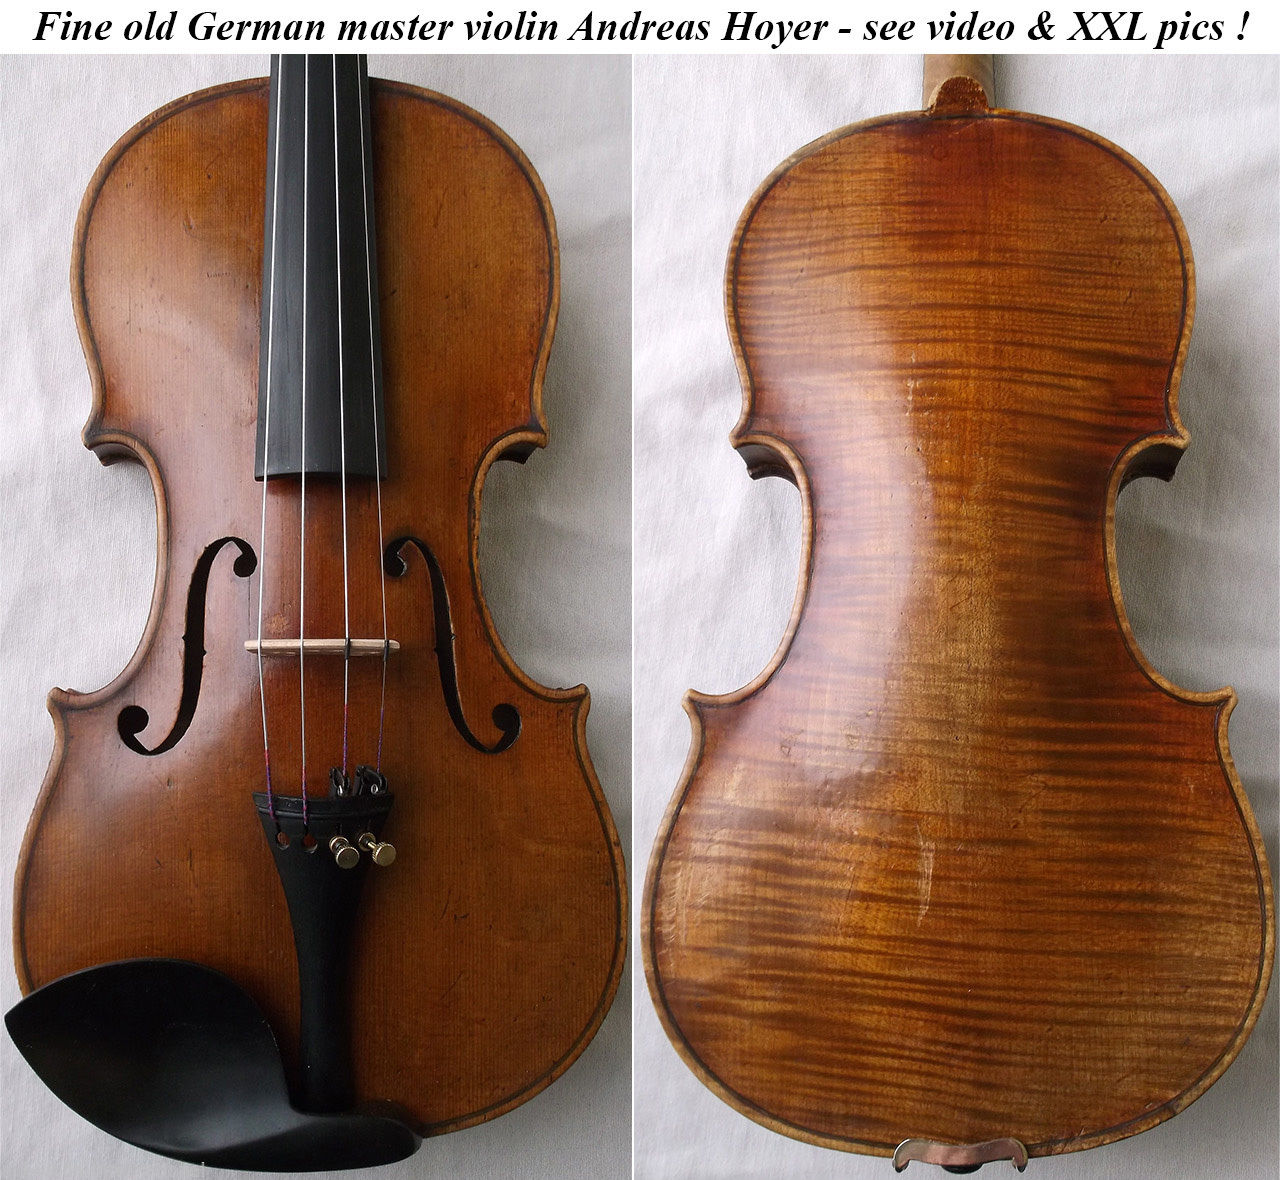 andreas hoyer violin